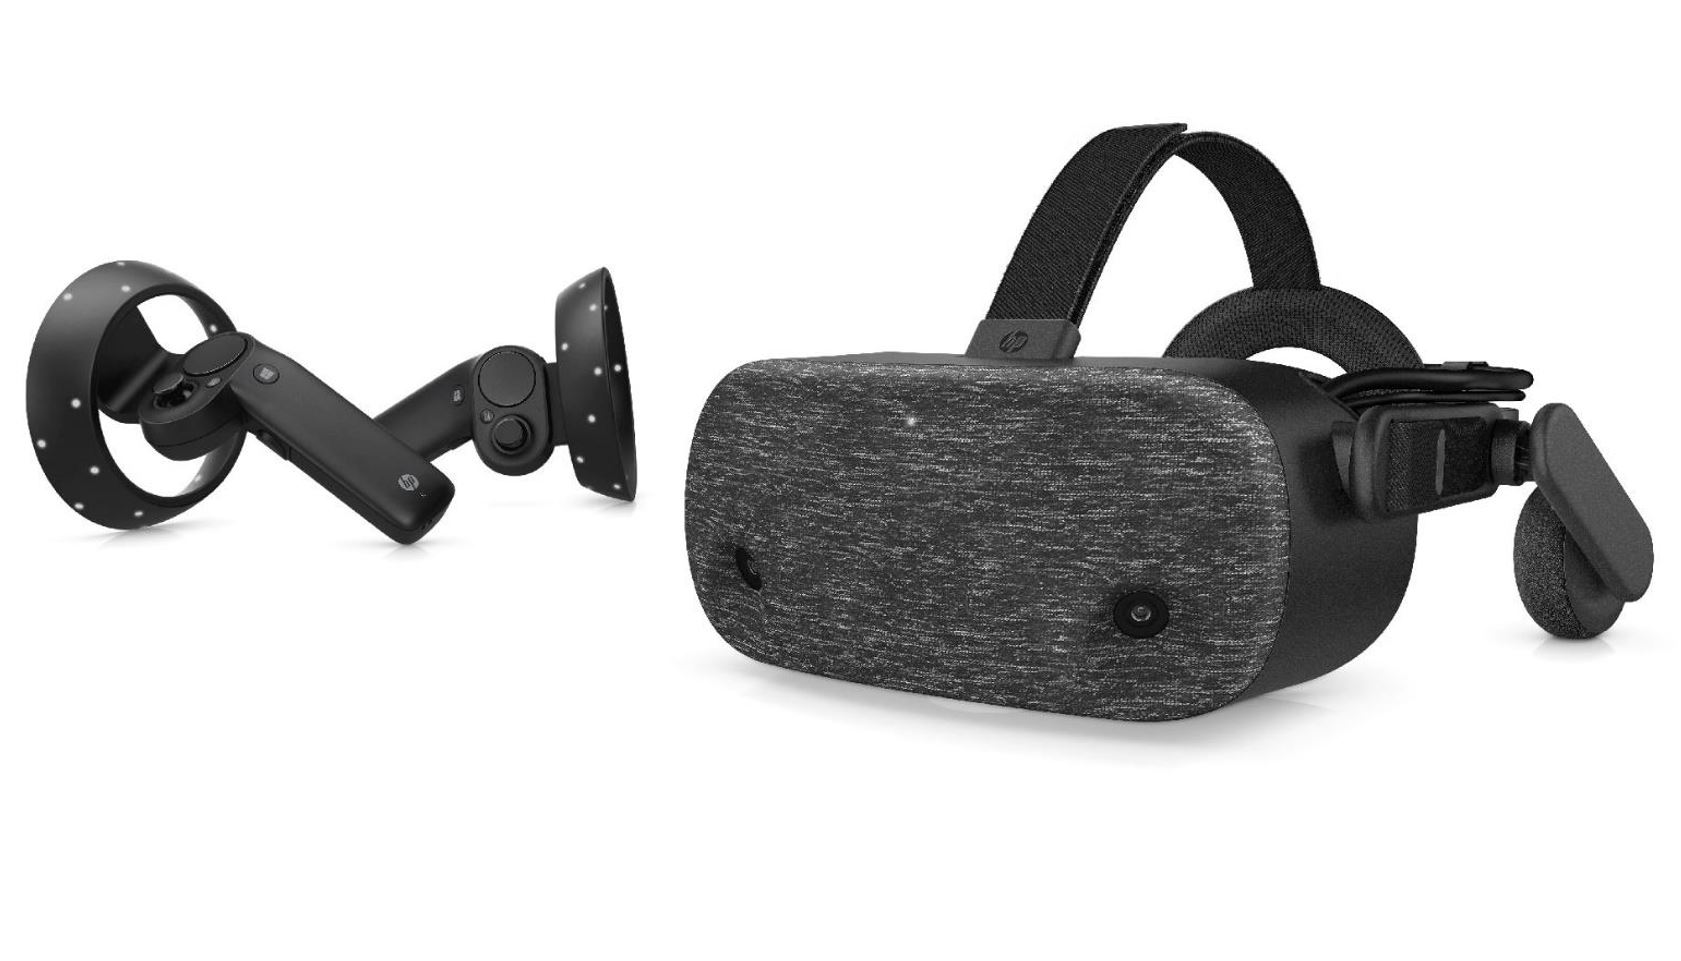 HP launches new VR headset for enterprise market